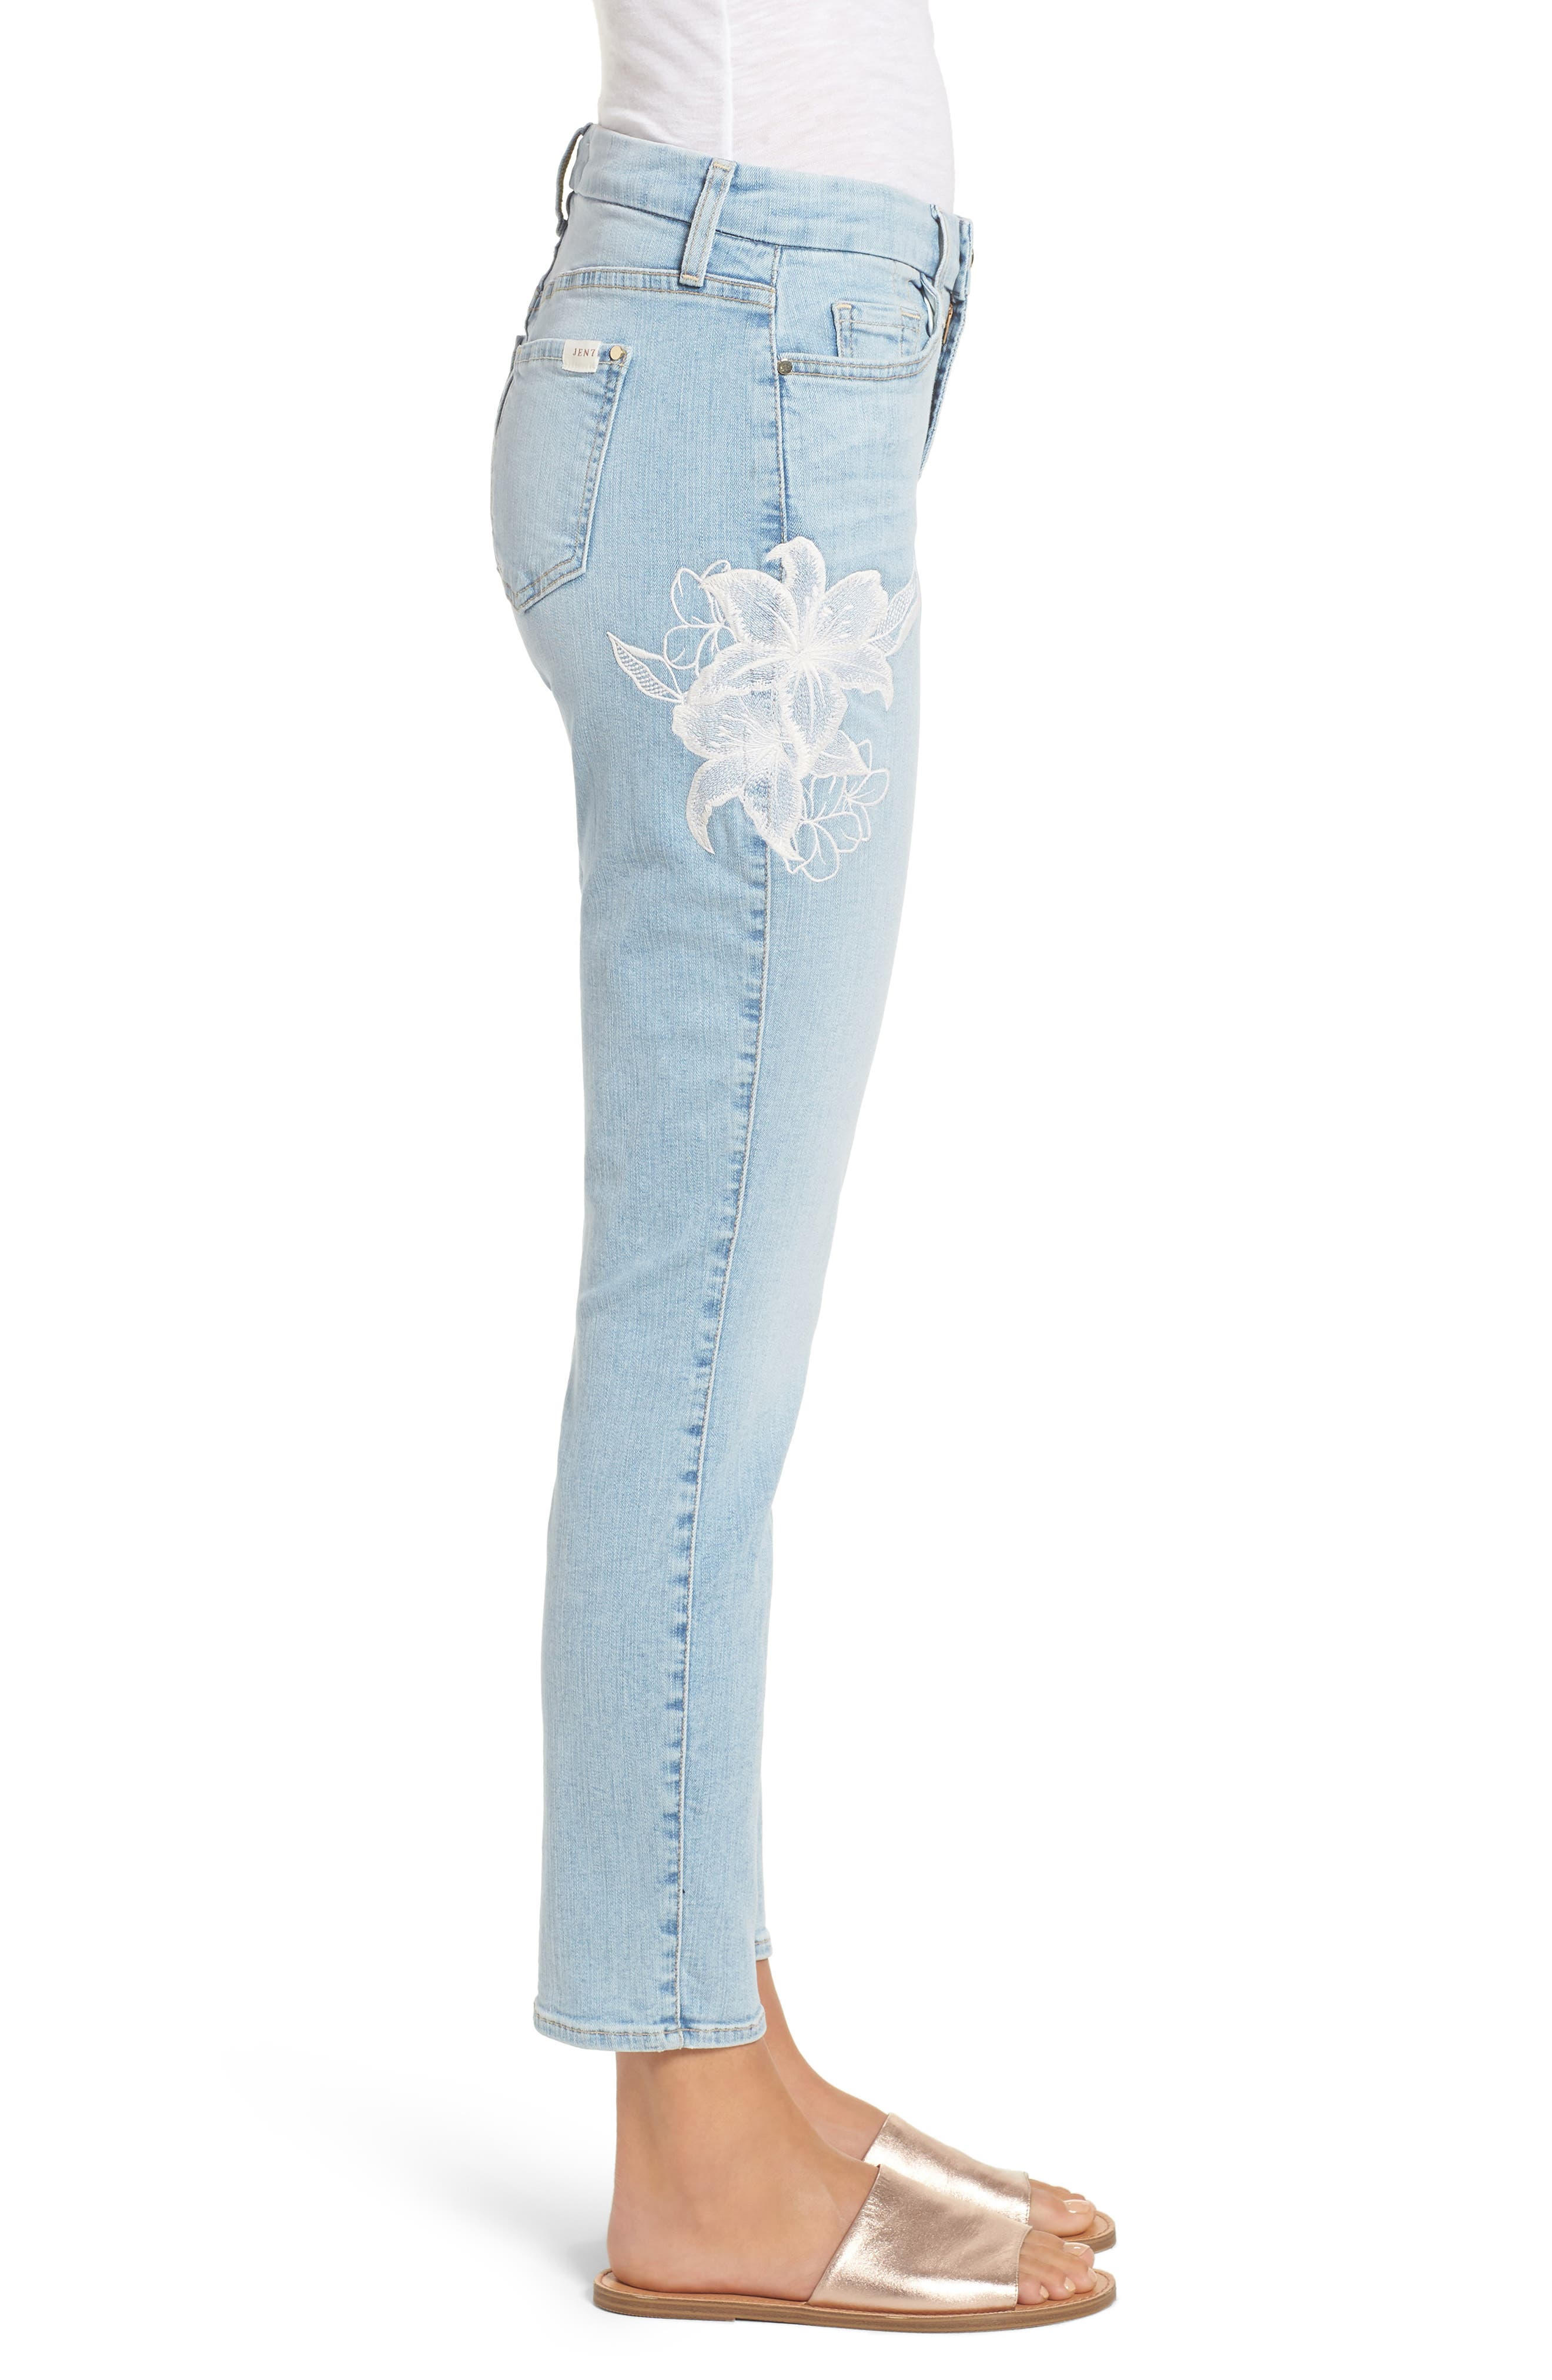 JEN7 BY 7 FOR ALL MANKIND, Embroidered Stretch Ankle Skinny Jeans, Alternate thumbnail 4, color, RICHE TOUCH PLAYA VISTA